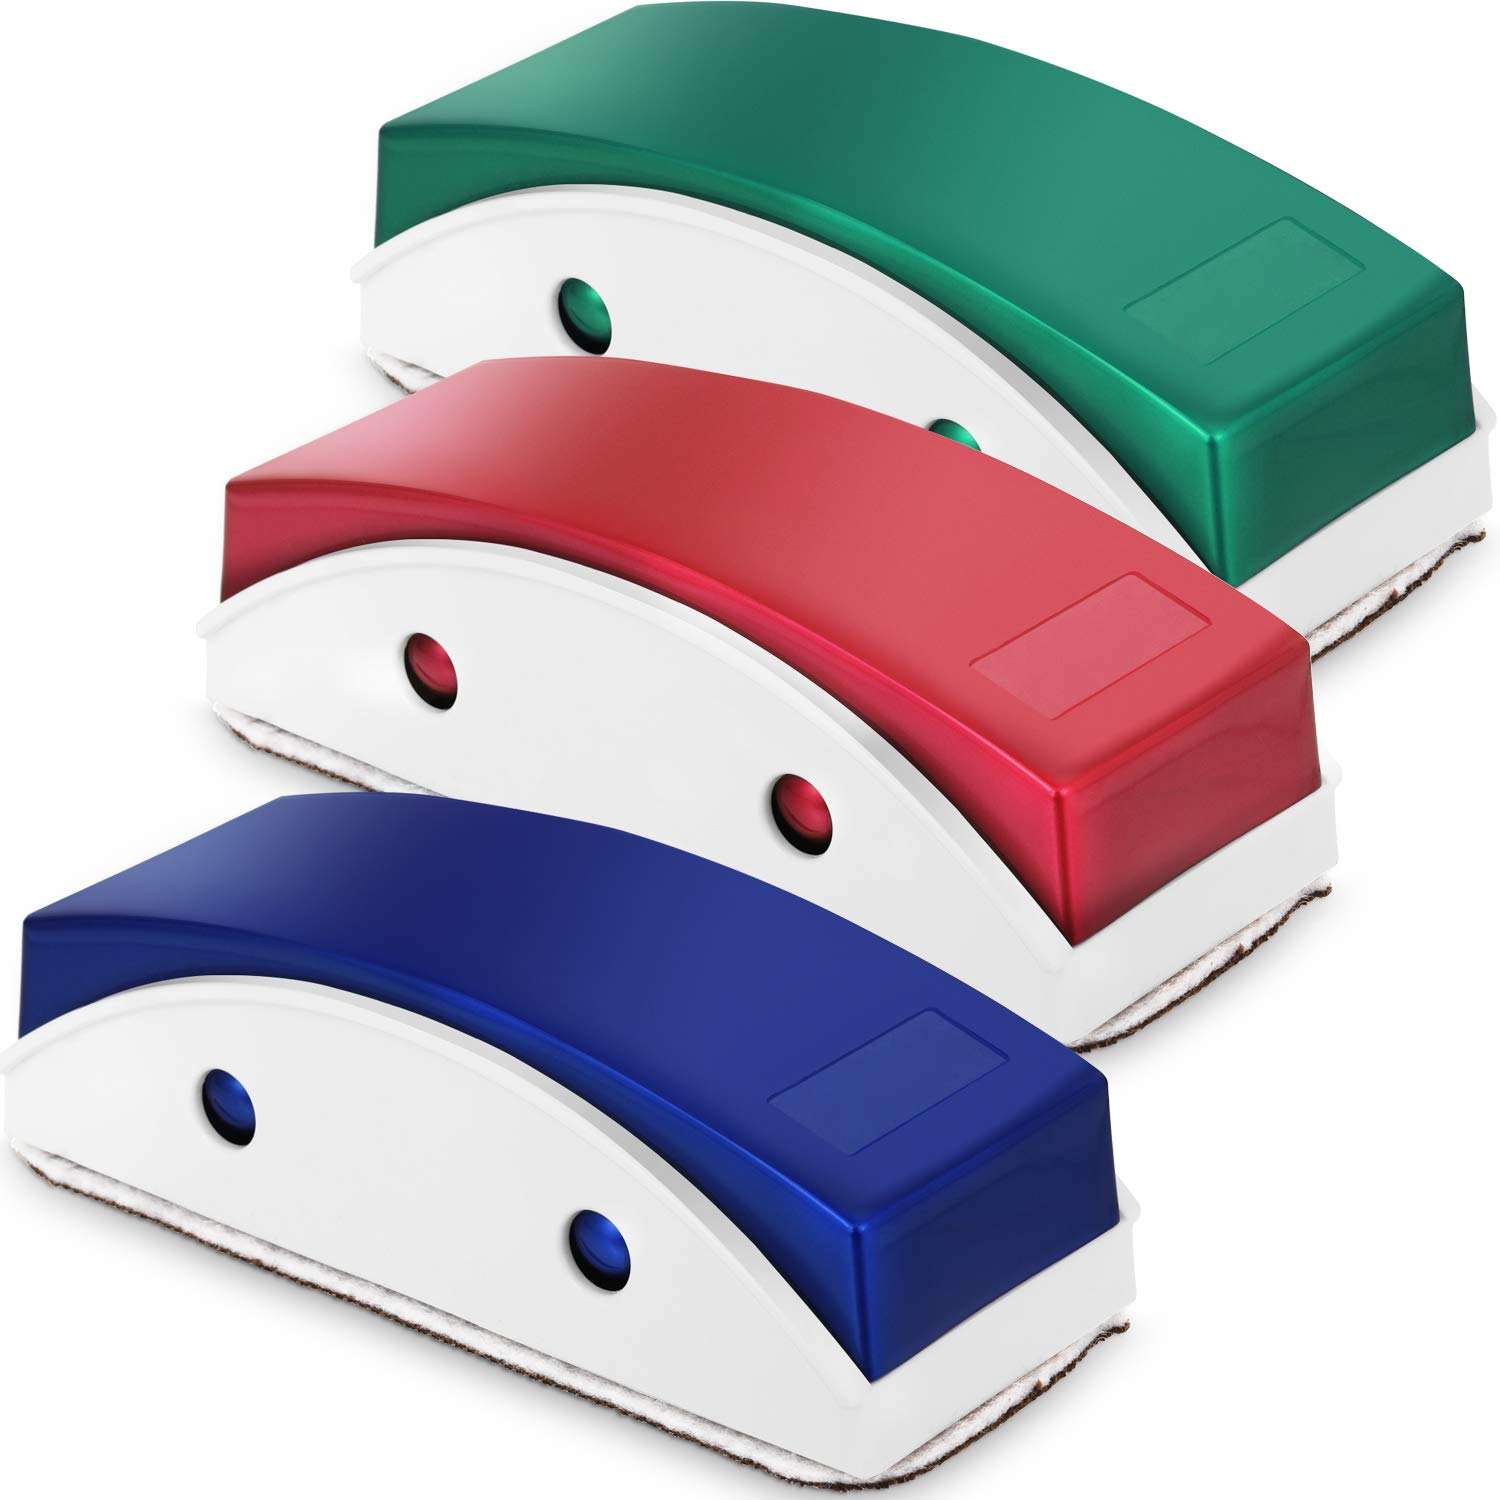 Blue, Green and Red, 3 Pieces Magnetic Whiteboard Eraser Dry Erase Eraser Chalkboard Eraser Cleaner with Cleaning Cloth Replacement for Classroom Offices Supplies